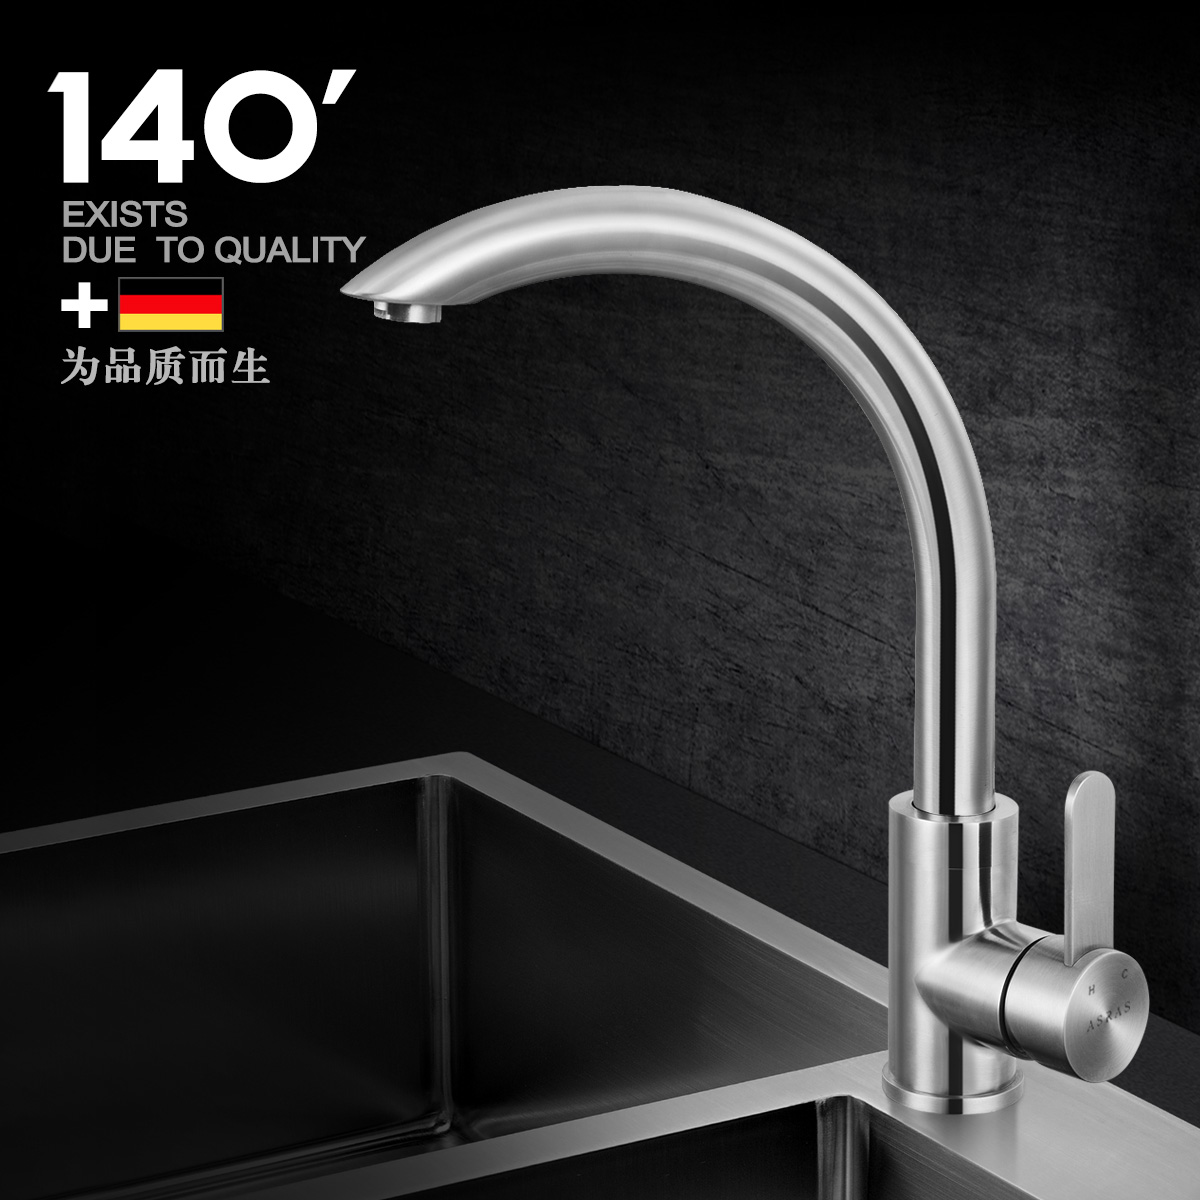 Assas 304 stainless steel kitchen sink full of hot and cold taps universal rotation vegetables basin sink unleaded